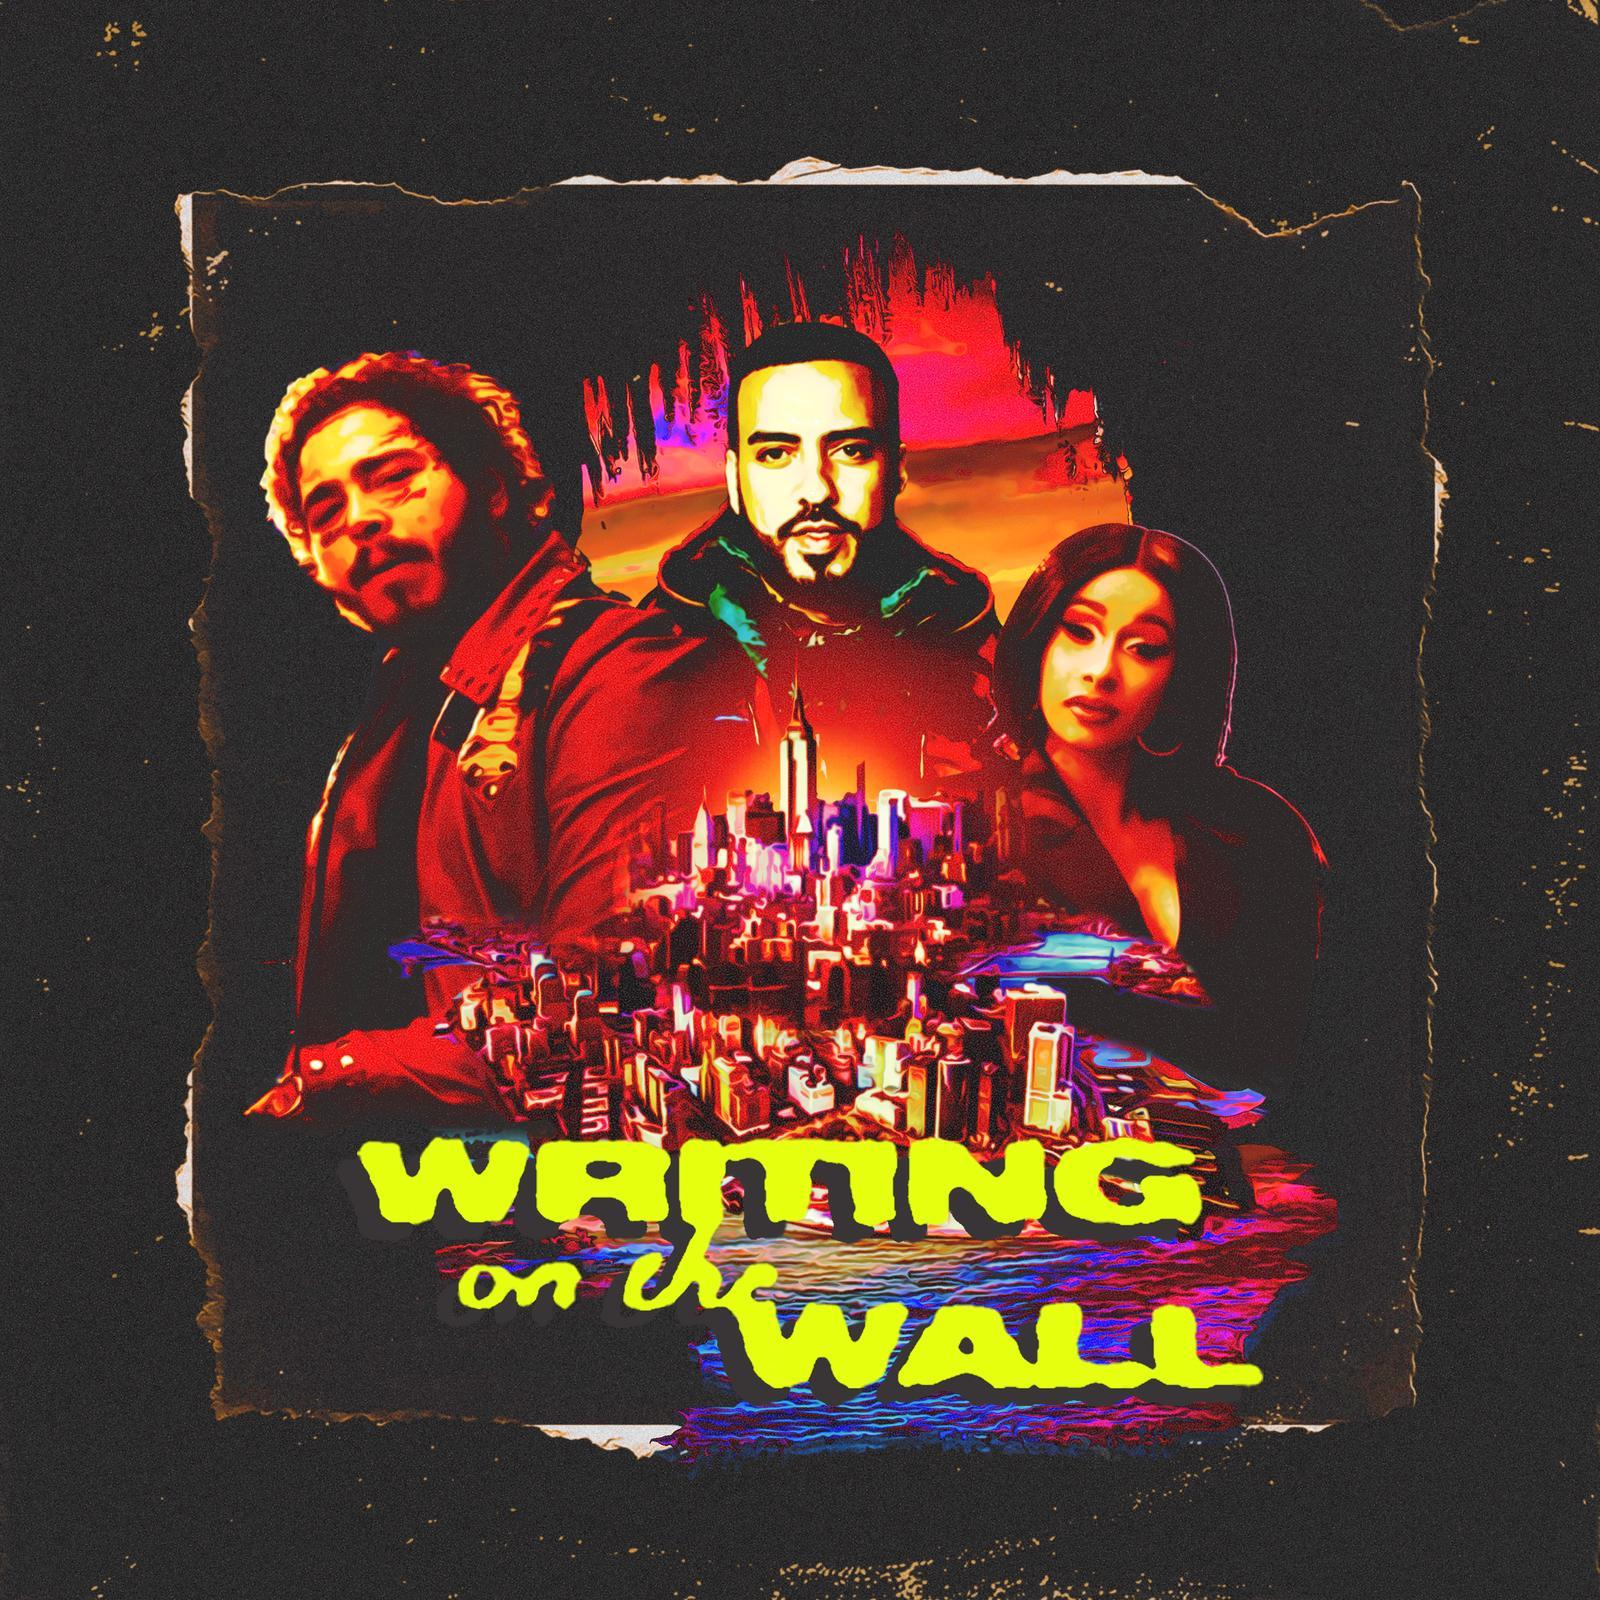 Cardi B French Montana Post Malone Writing on the Wall single artwork